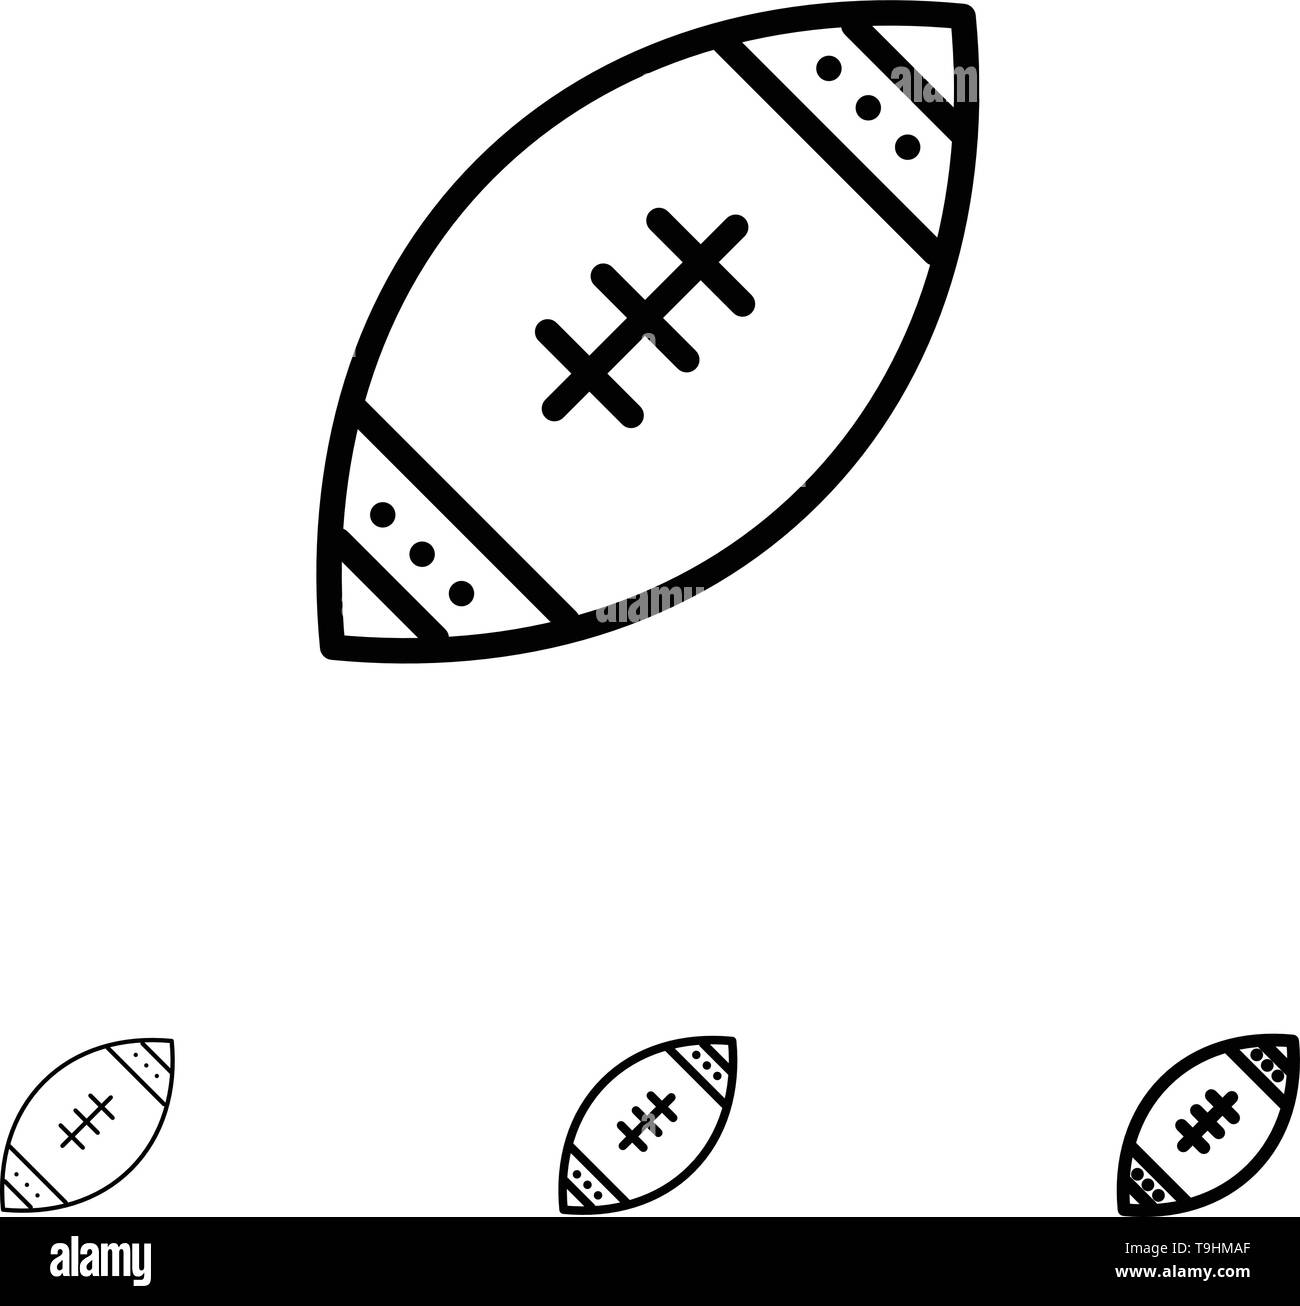 American, Ball, Football, Nfl, Rugby Bold and thin black line icon set - Stock Image